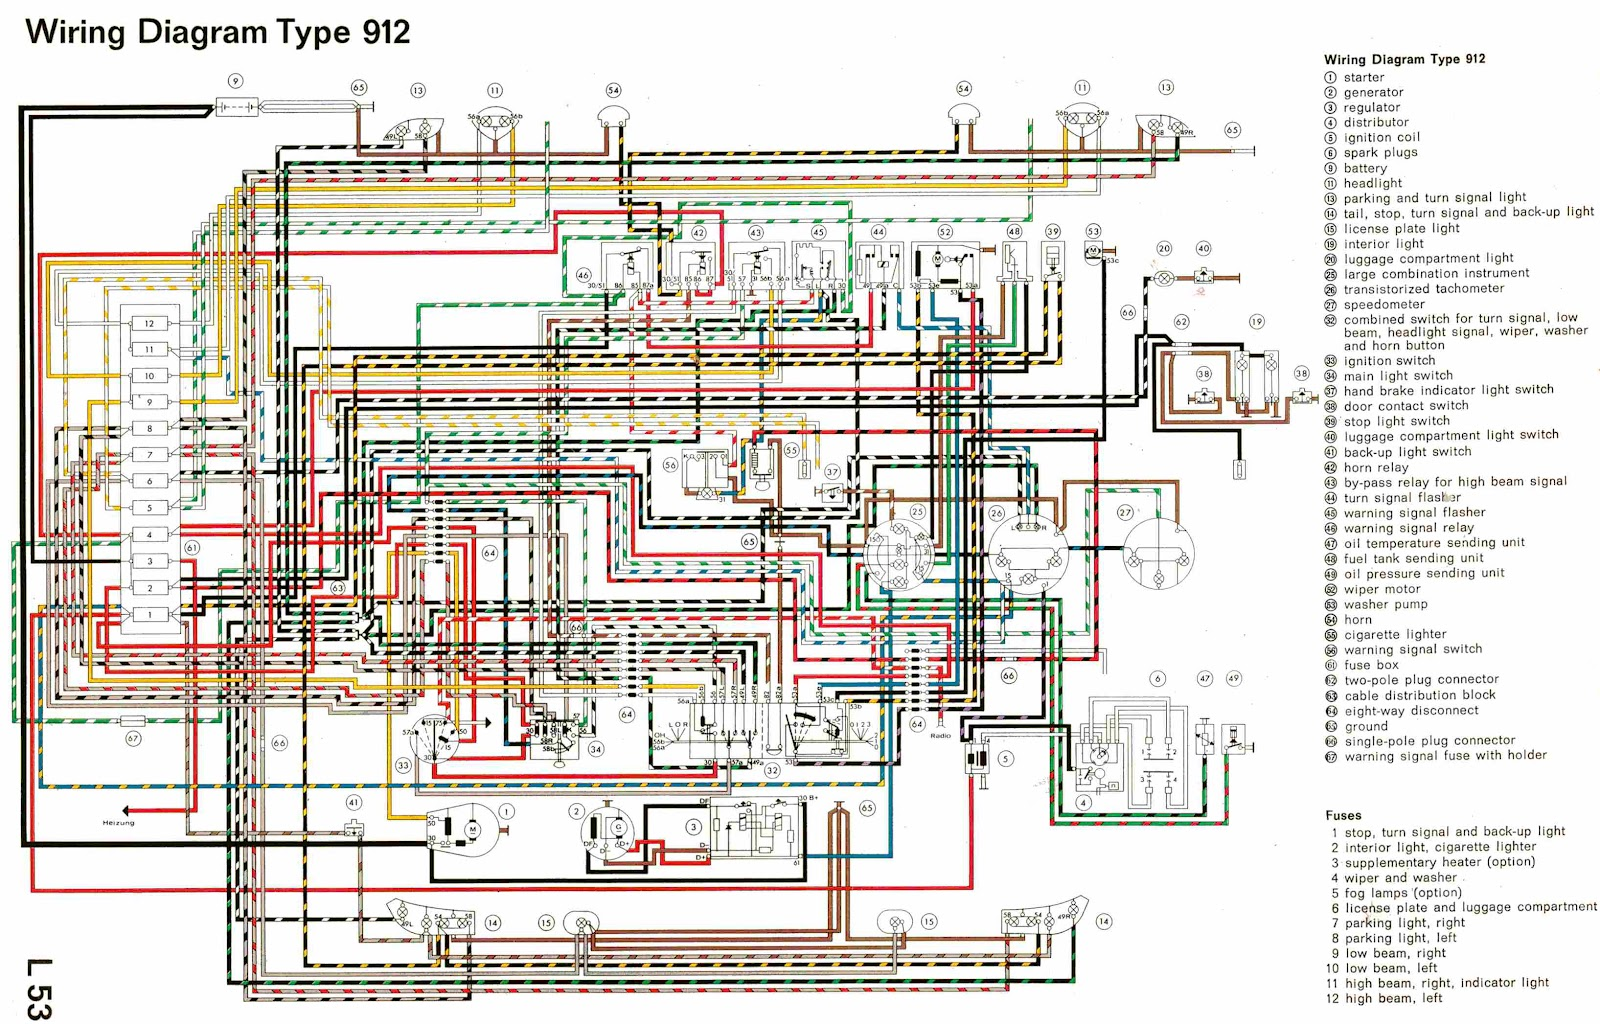 2005 jaguar s type wiring diagram eOlsUBU diagrams 633455 jaguar s type wiring diagram stype electrical  at couponss.co